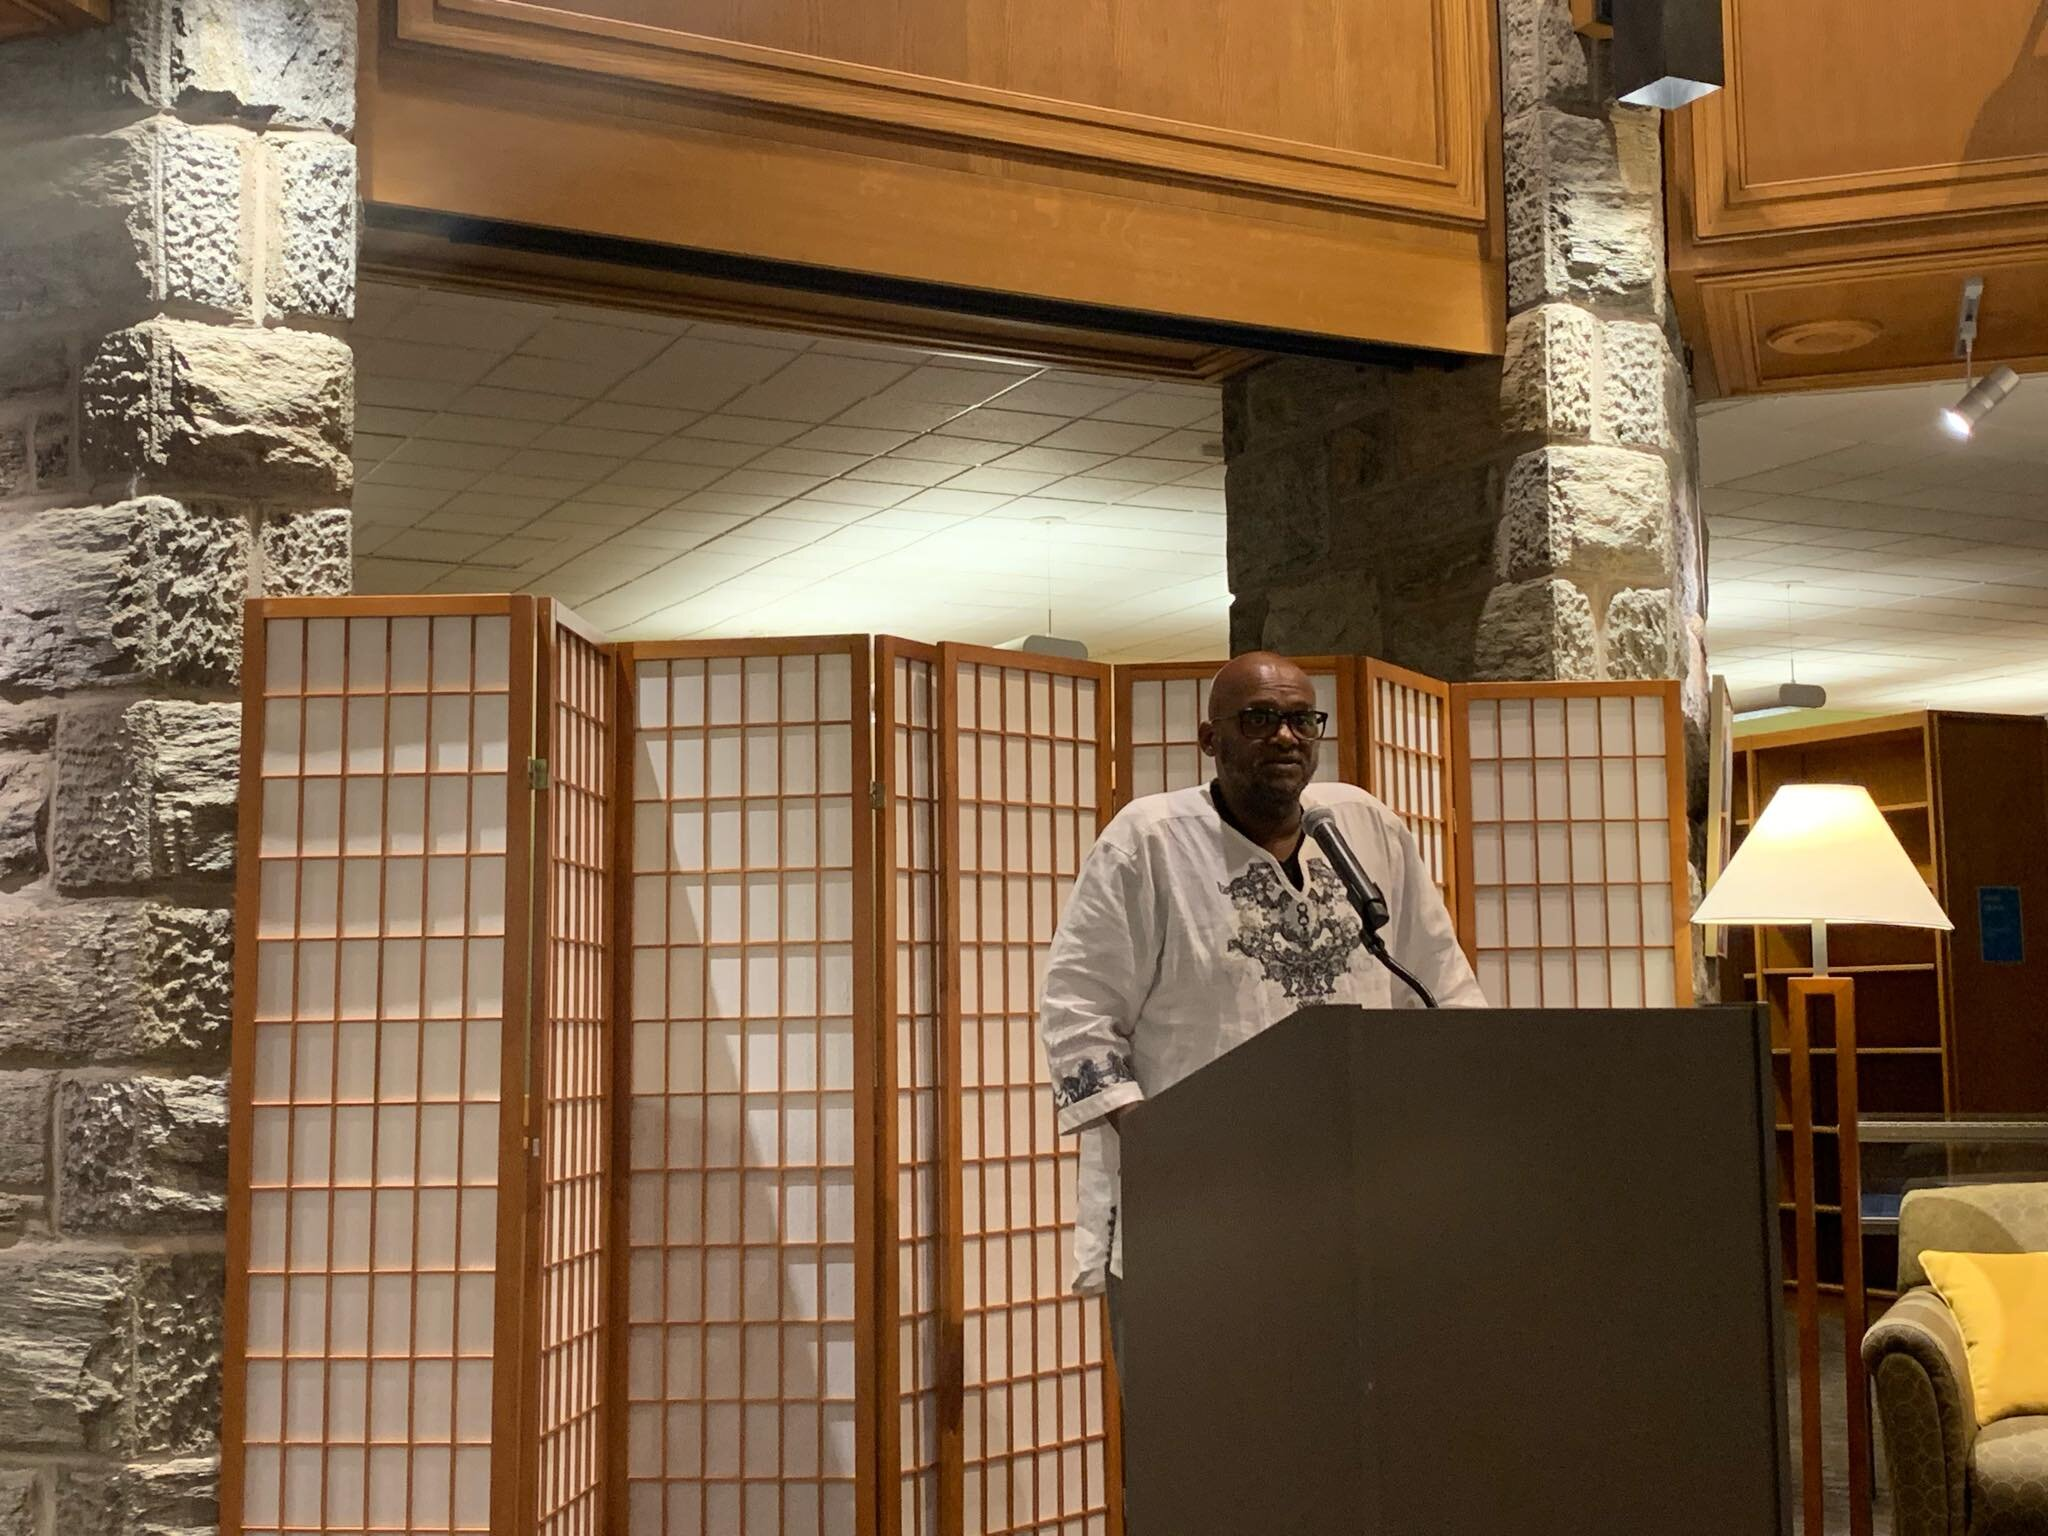 Dion Lewis, Associate Dean and Director of the BCC, speaking at the reception in McCabe library on Sept. 10.